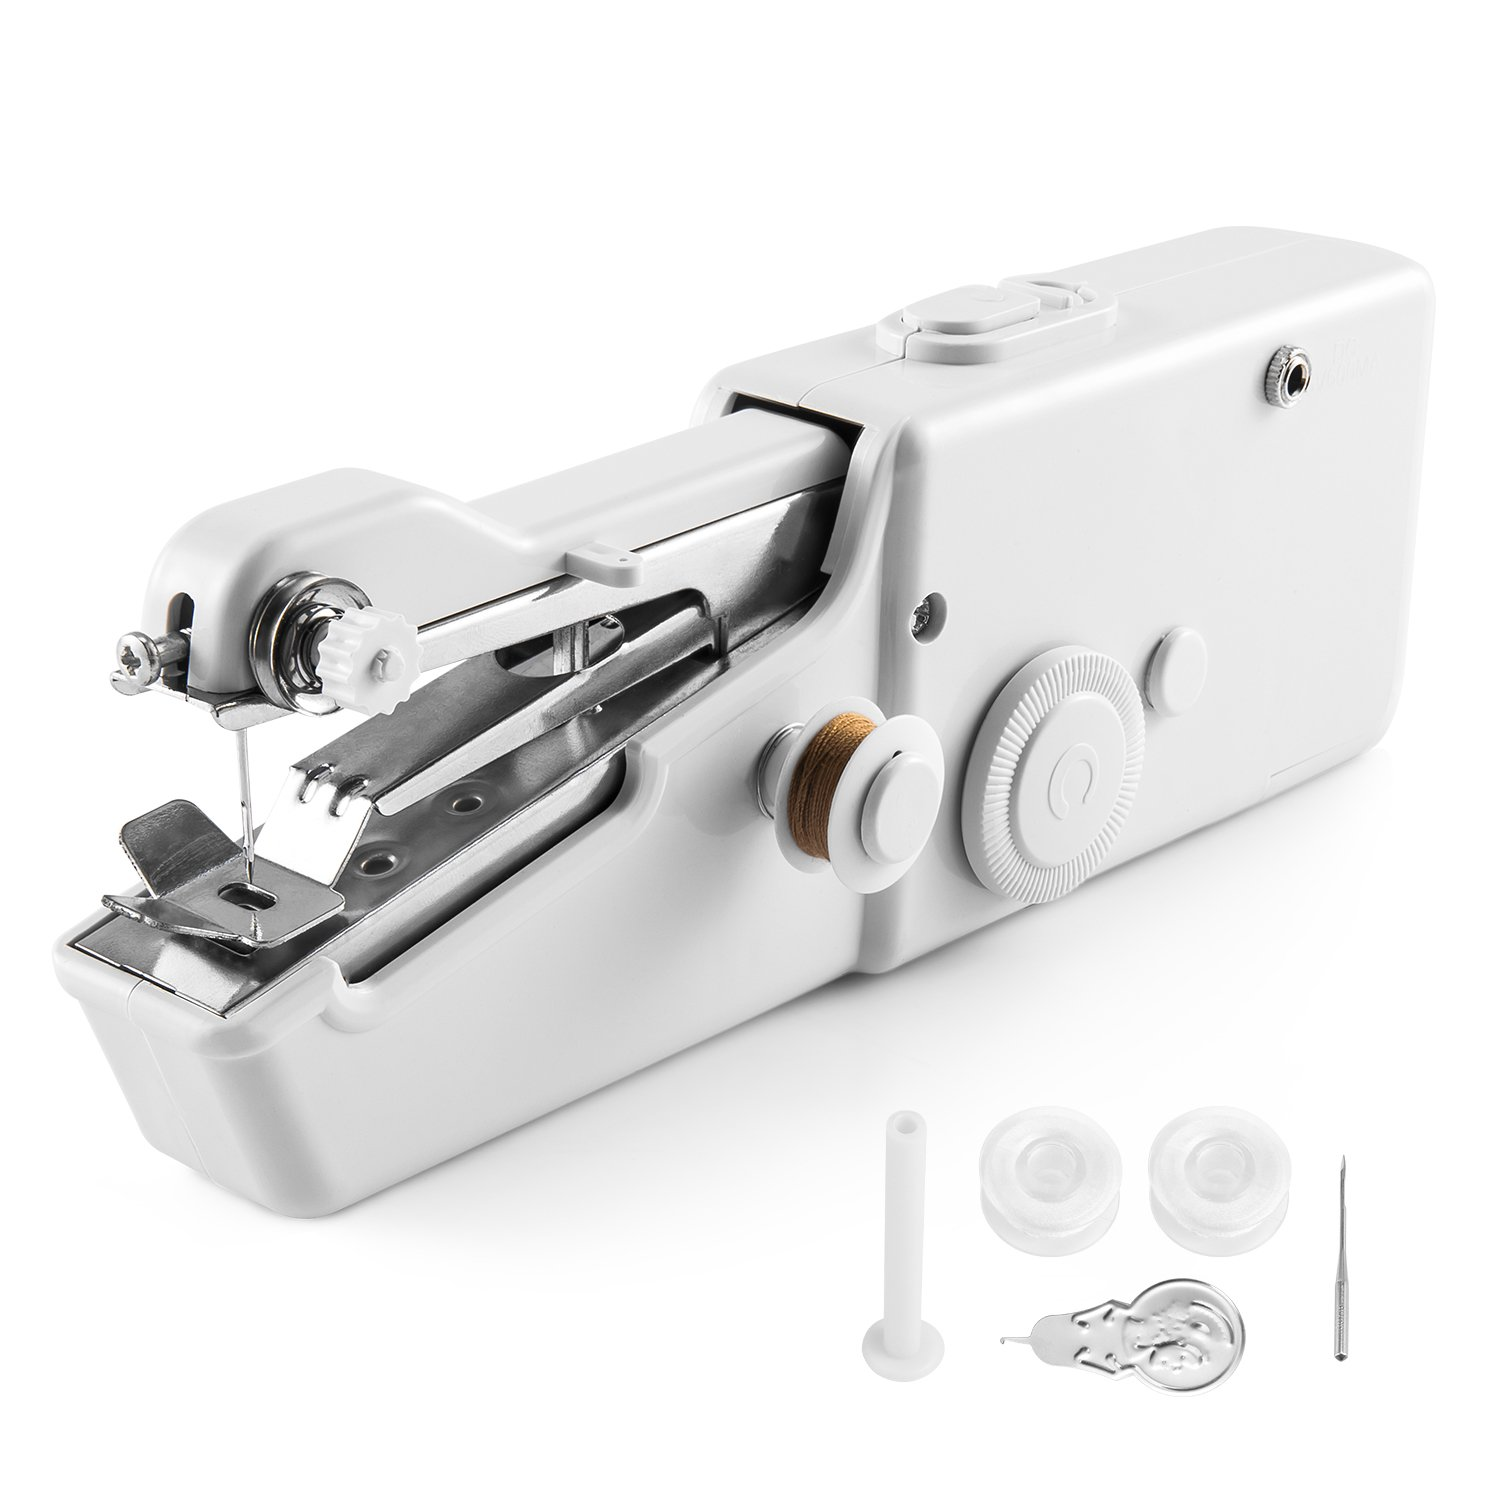 Handheld Sewing Machine, Mini Handy Stitch Portable Sewing Machine Cordless Batteryed for Home Travel